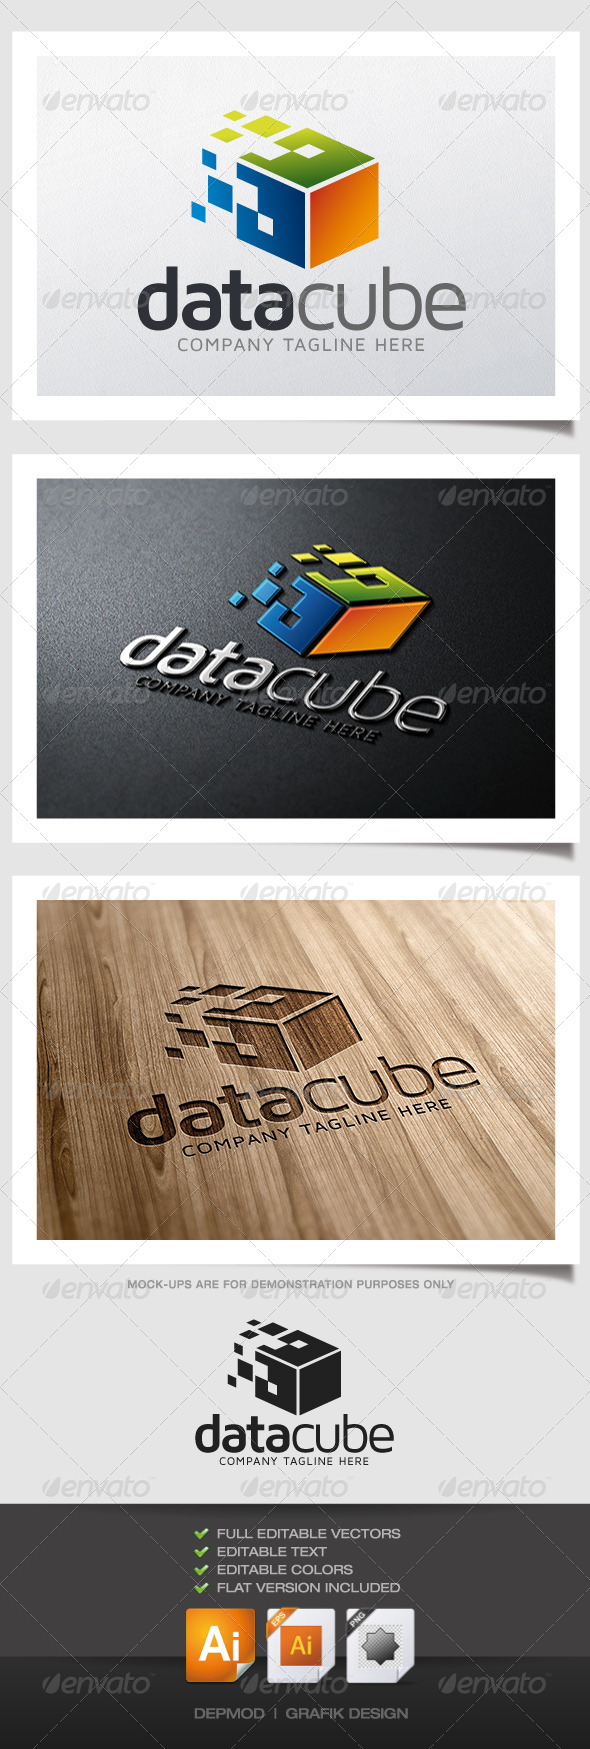 Data Cube Logo - Abstract Logo Templates